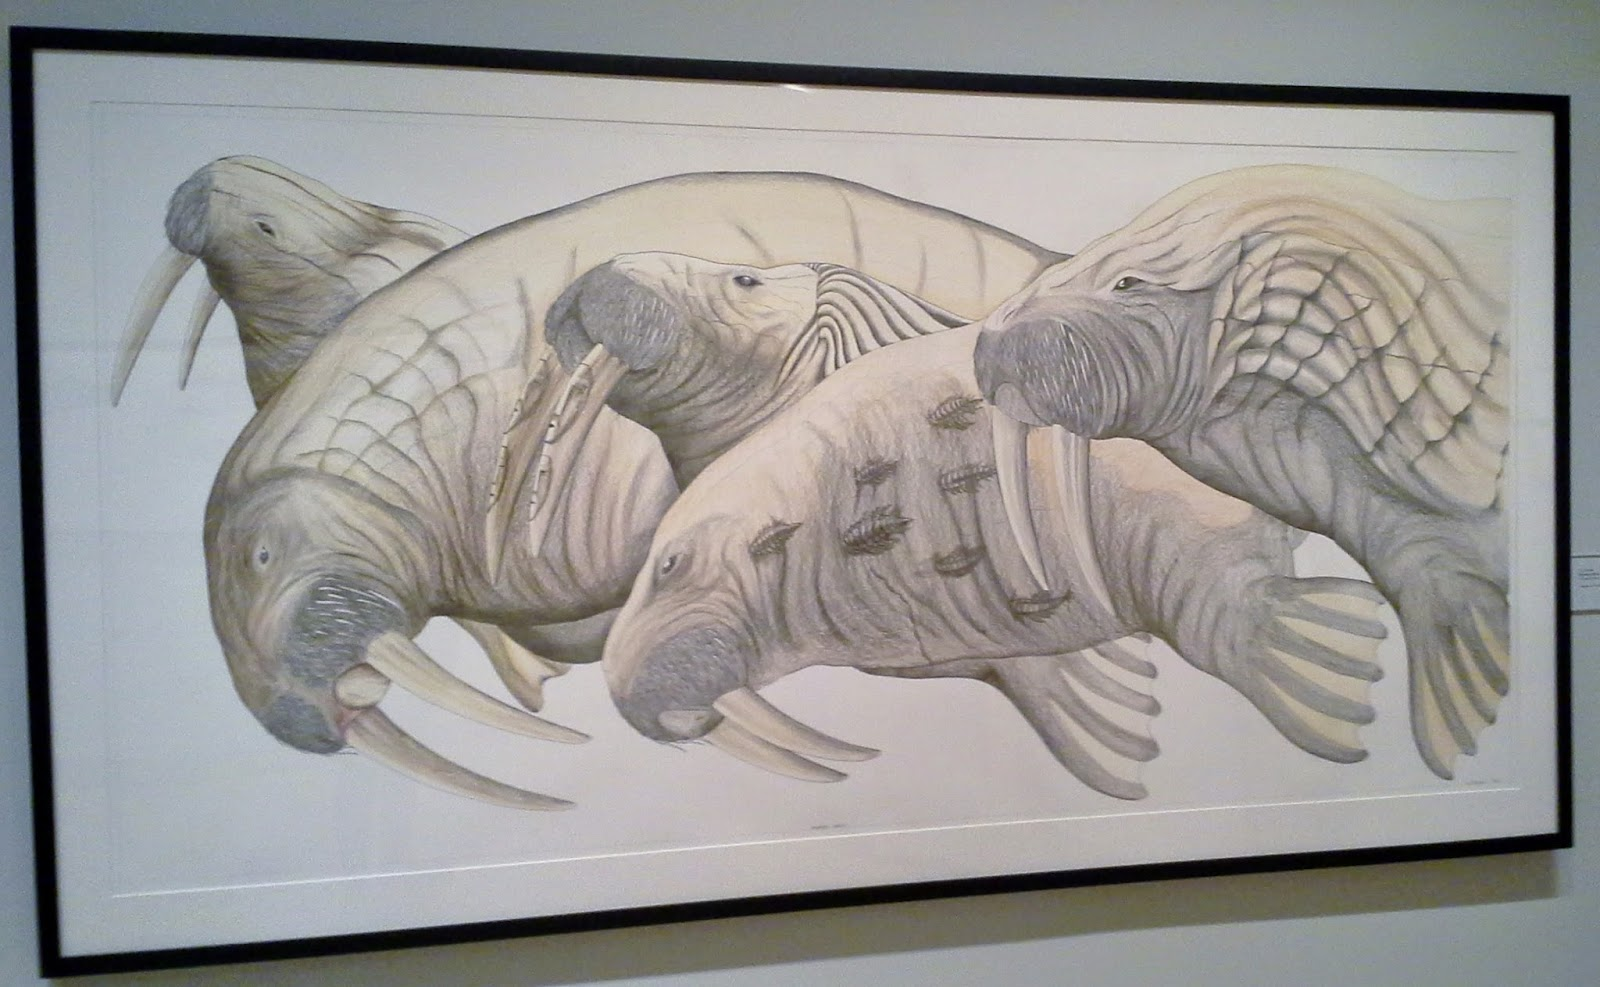 Magentic North Exhibit: Toronto Public Reference Library, Toronto,Art, Culture, Inuit,Trend, Melanie.Ps, The Purple Scarf, Migrating Walrus drawing, 2013 by Tim Pitsiulak